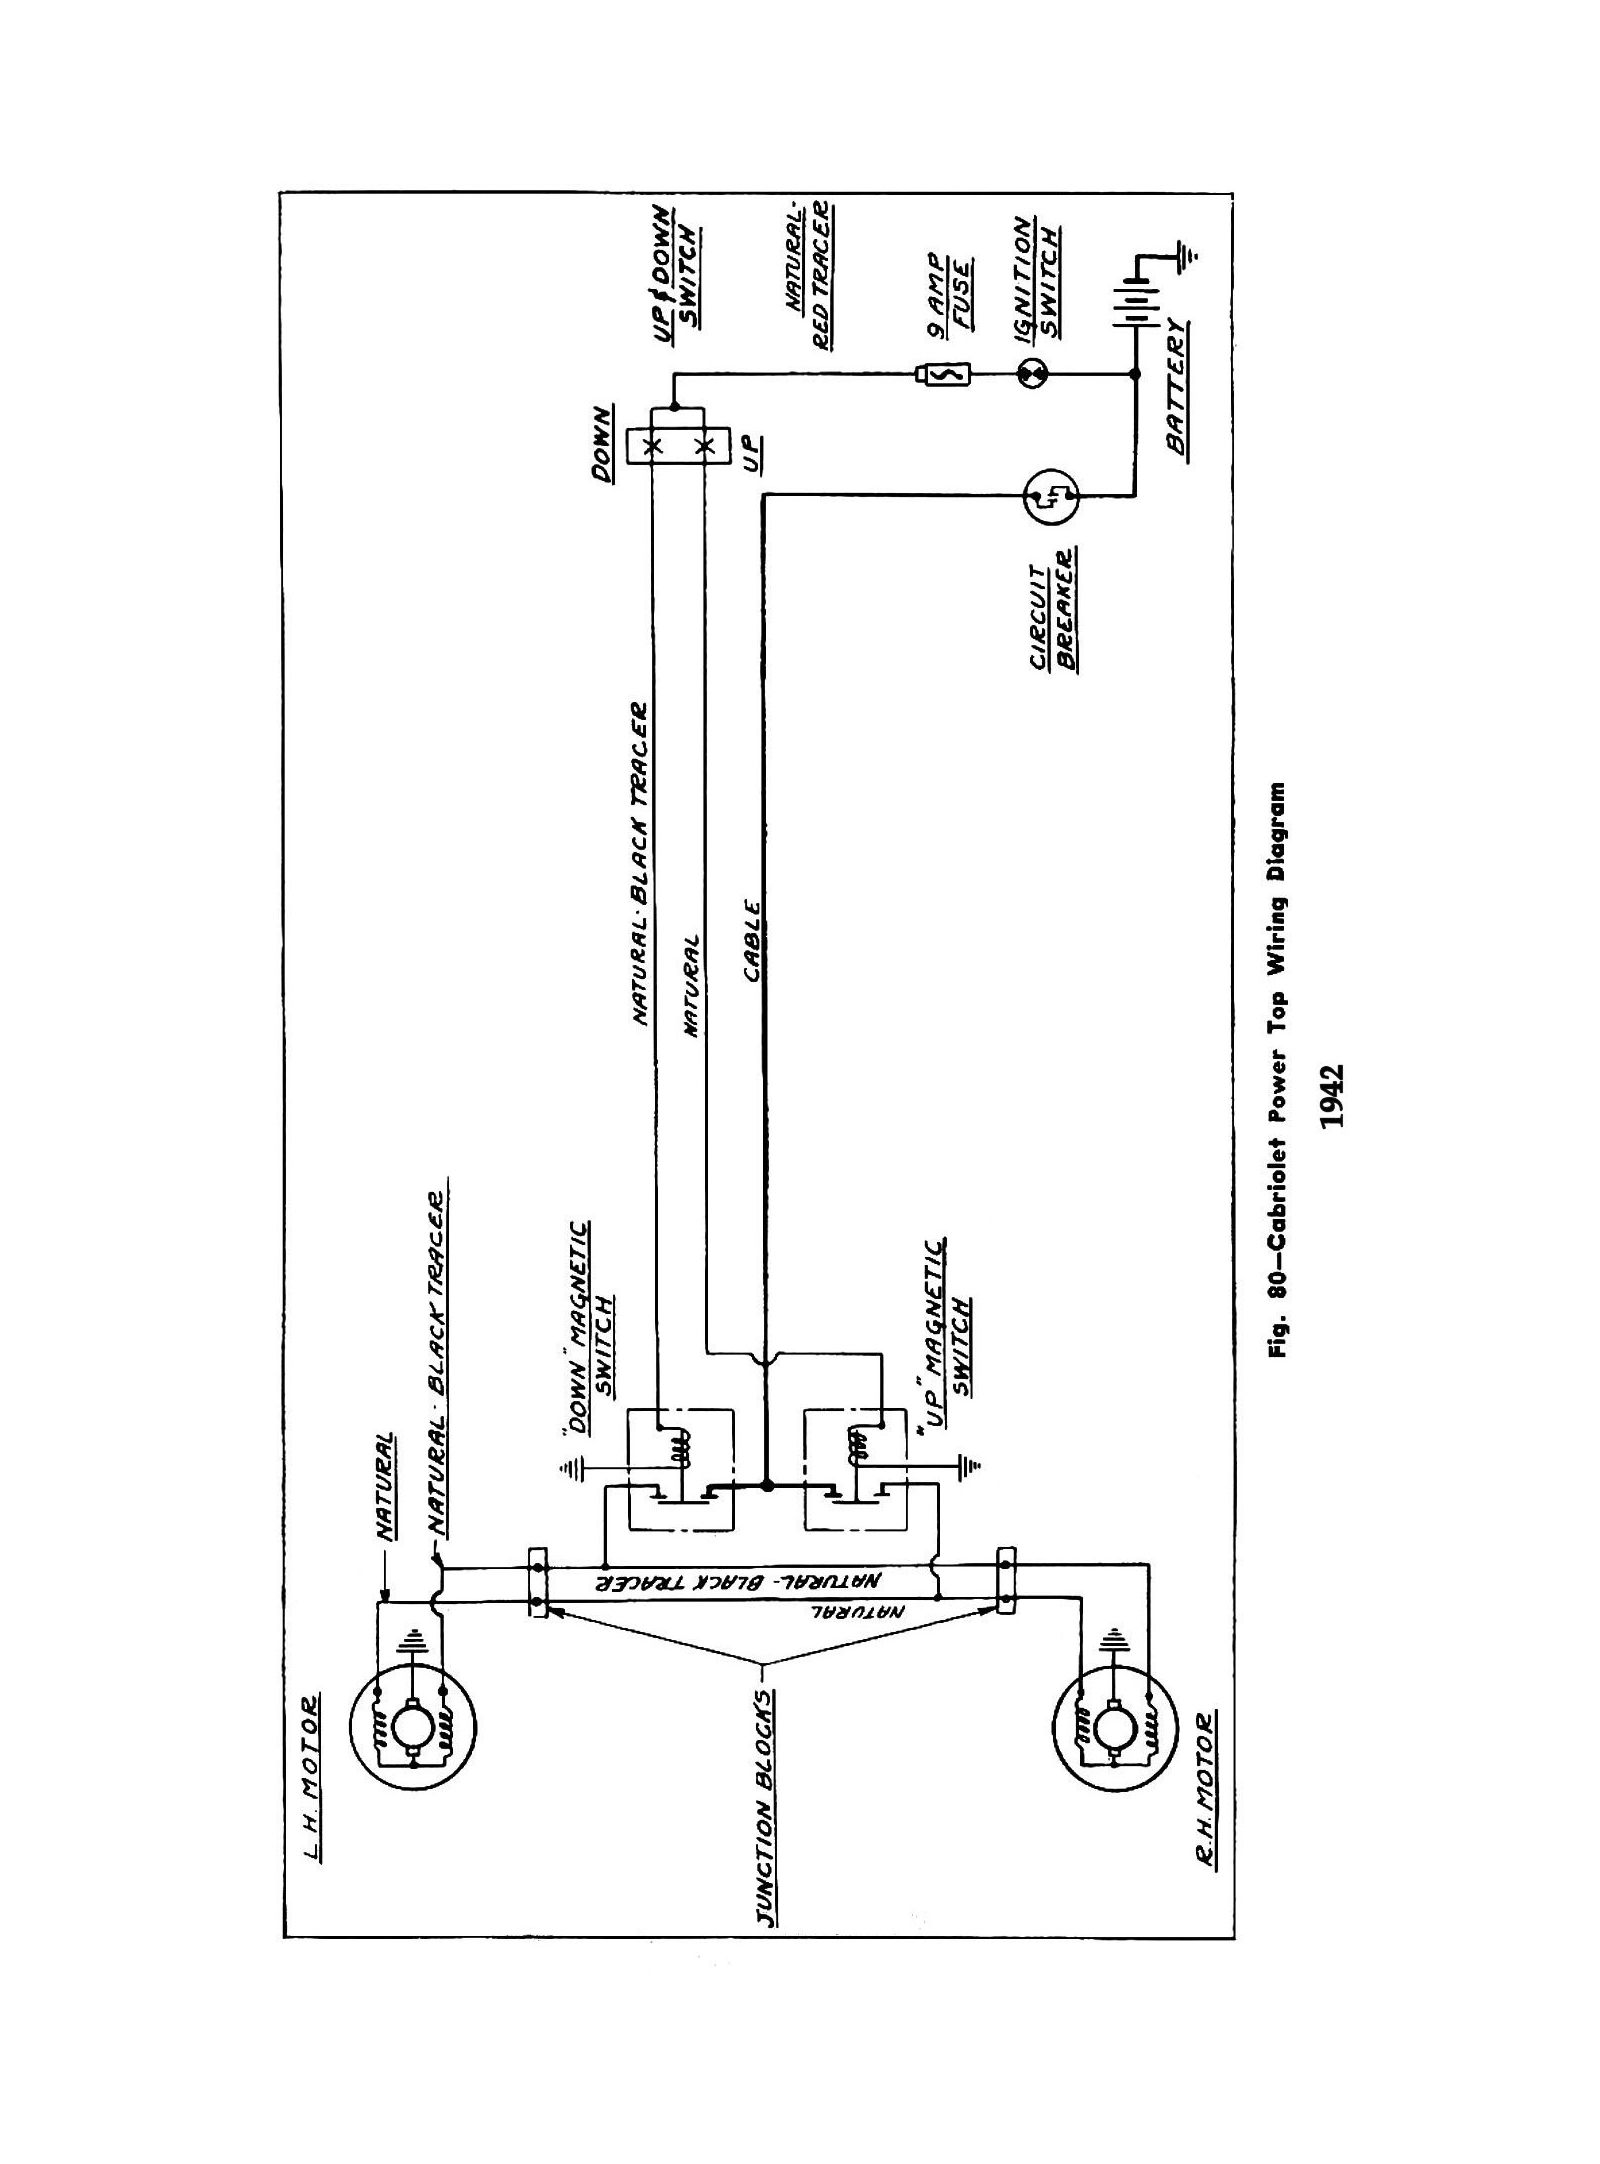 ke light switch diagram wiring diagrams pictures